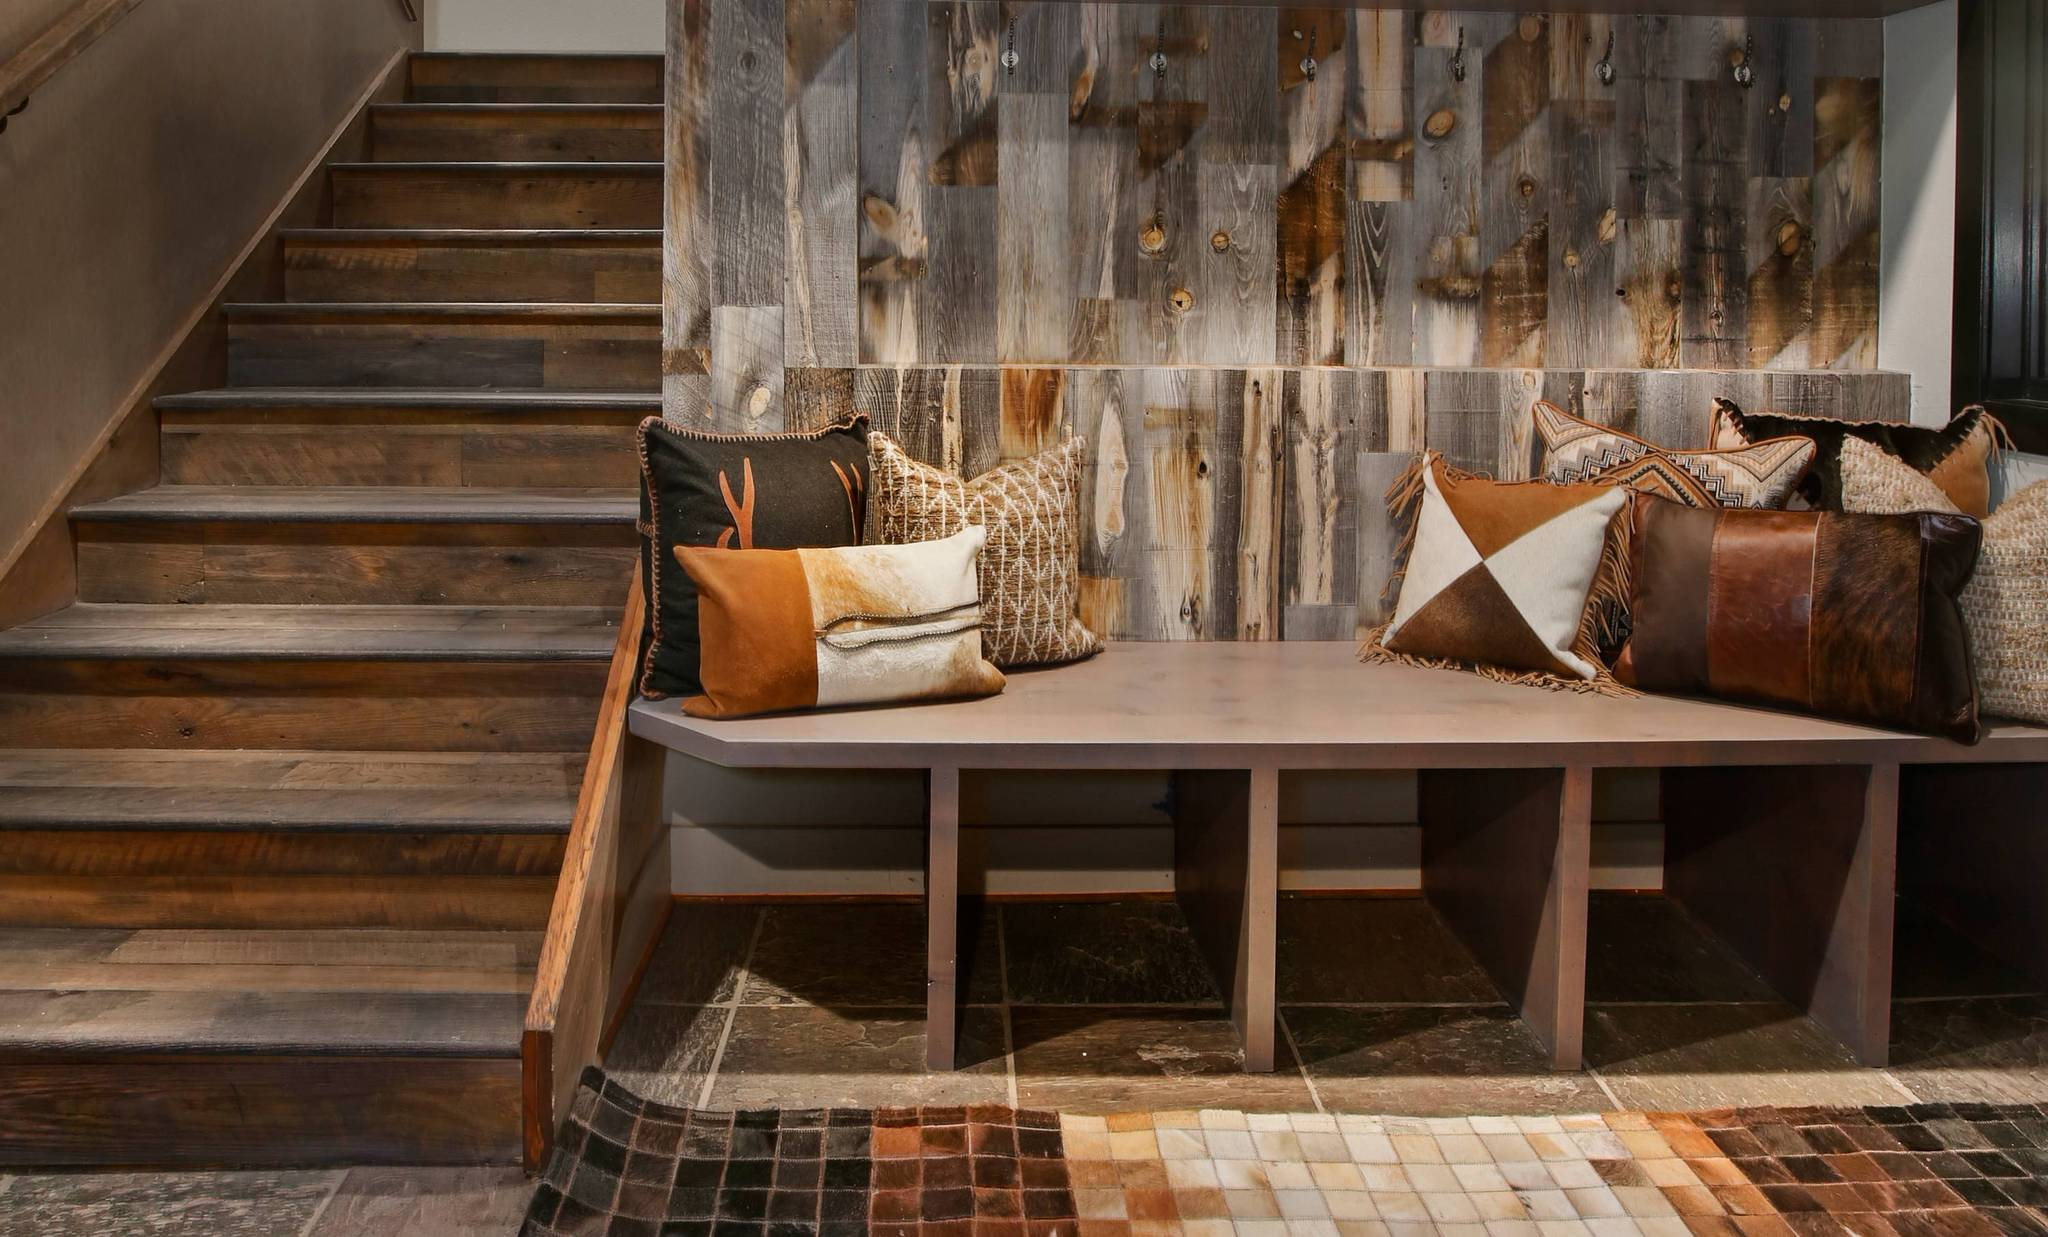 Rustic cabin entryway with shoe shelves accented by Stikwood peel and stick reclaimed weathered wood wall and ceiling planks.